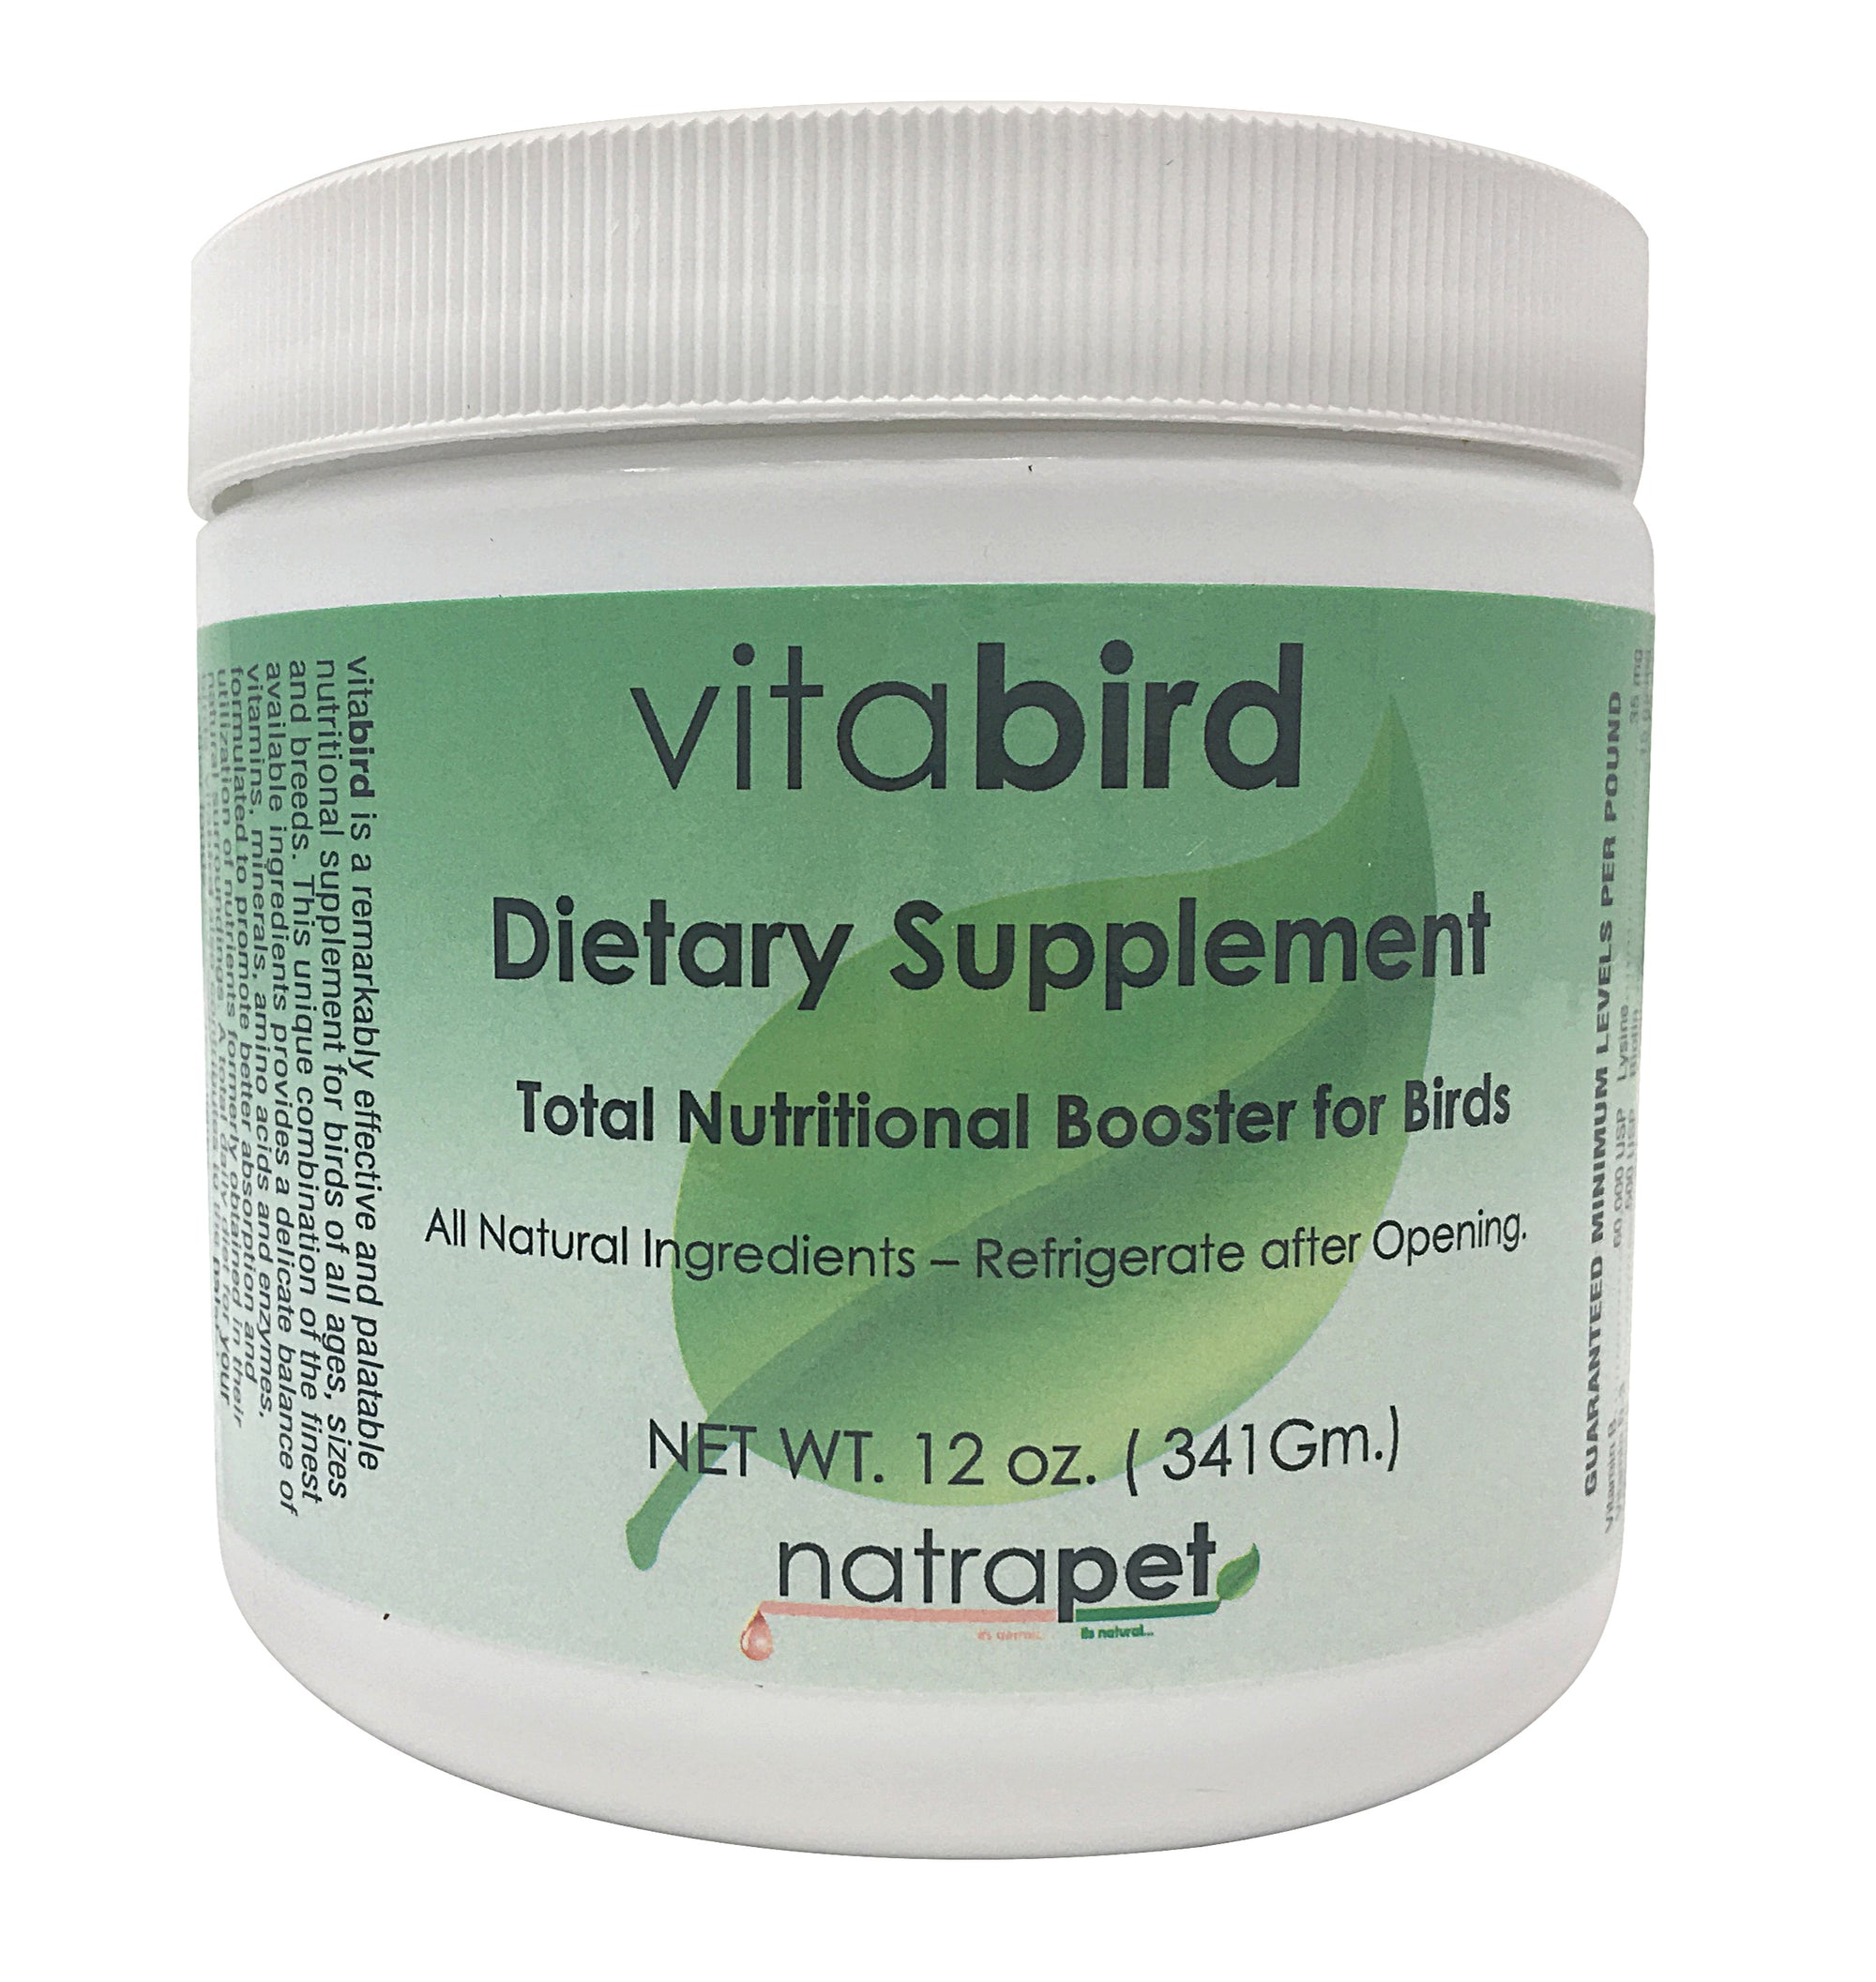 VitaBird Dietary Supplement for Birds